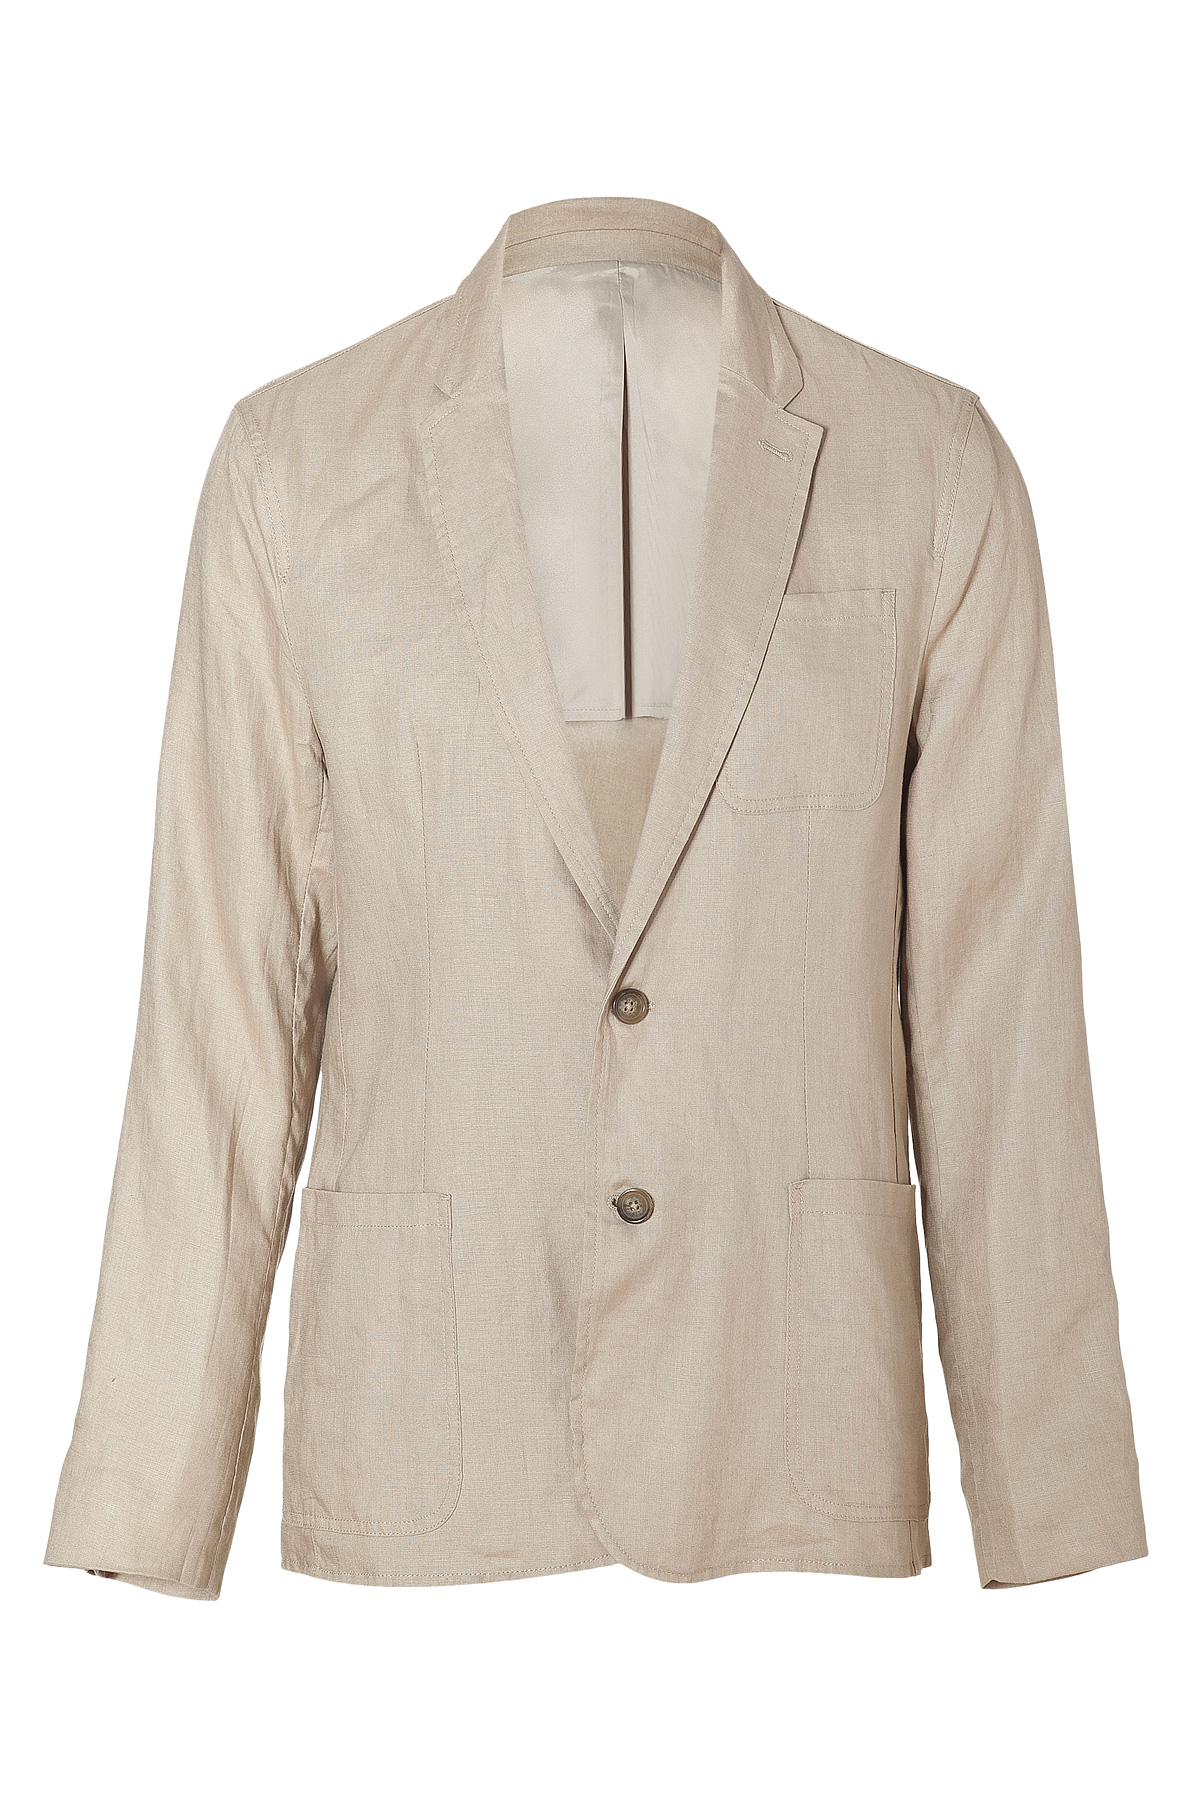 michael kors khaki two button linen blazer in khaki for men lyst. Black Bedroom Furniture Sets. Home Design Ideas